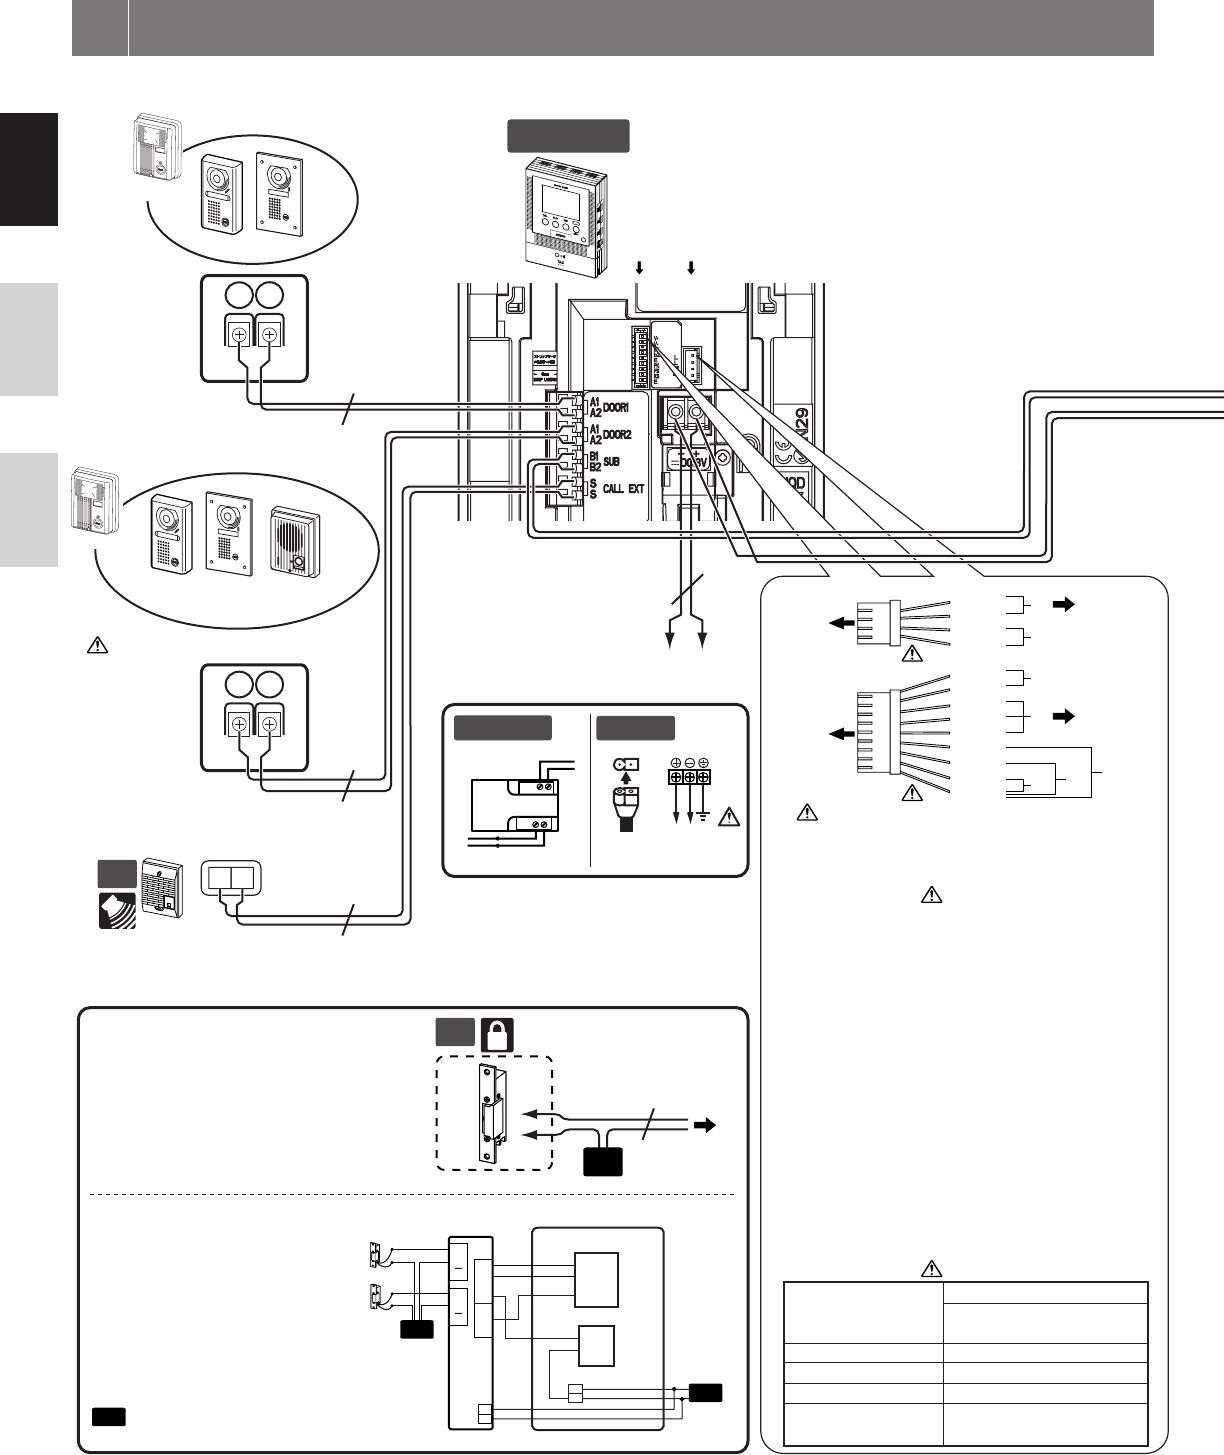 College Wiring Diagram